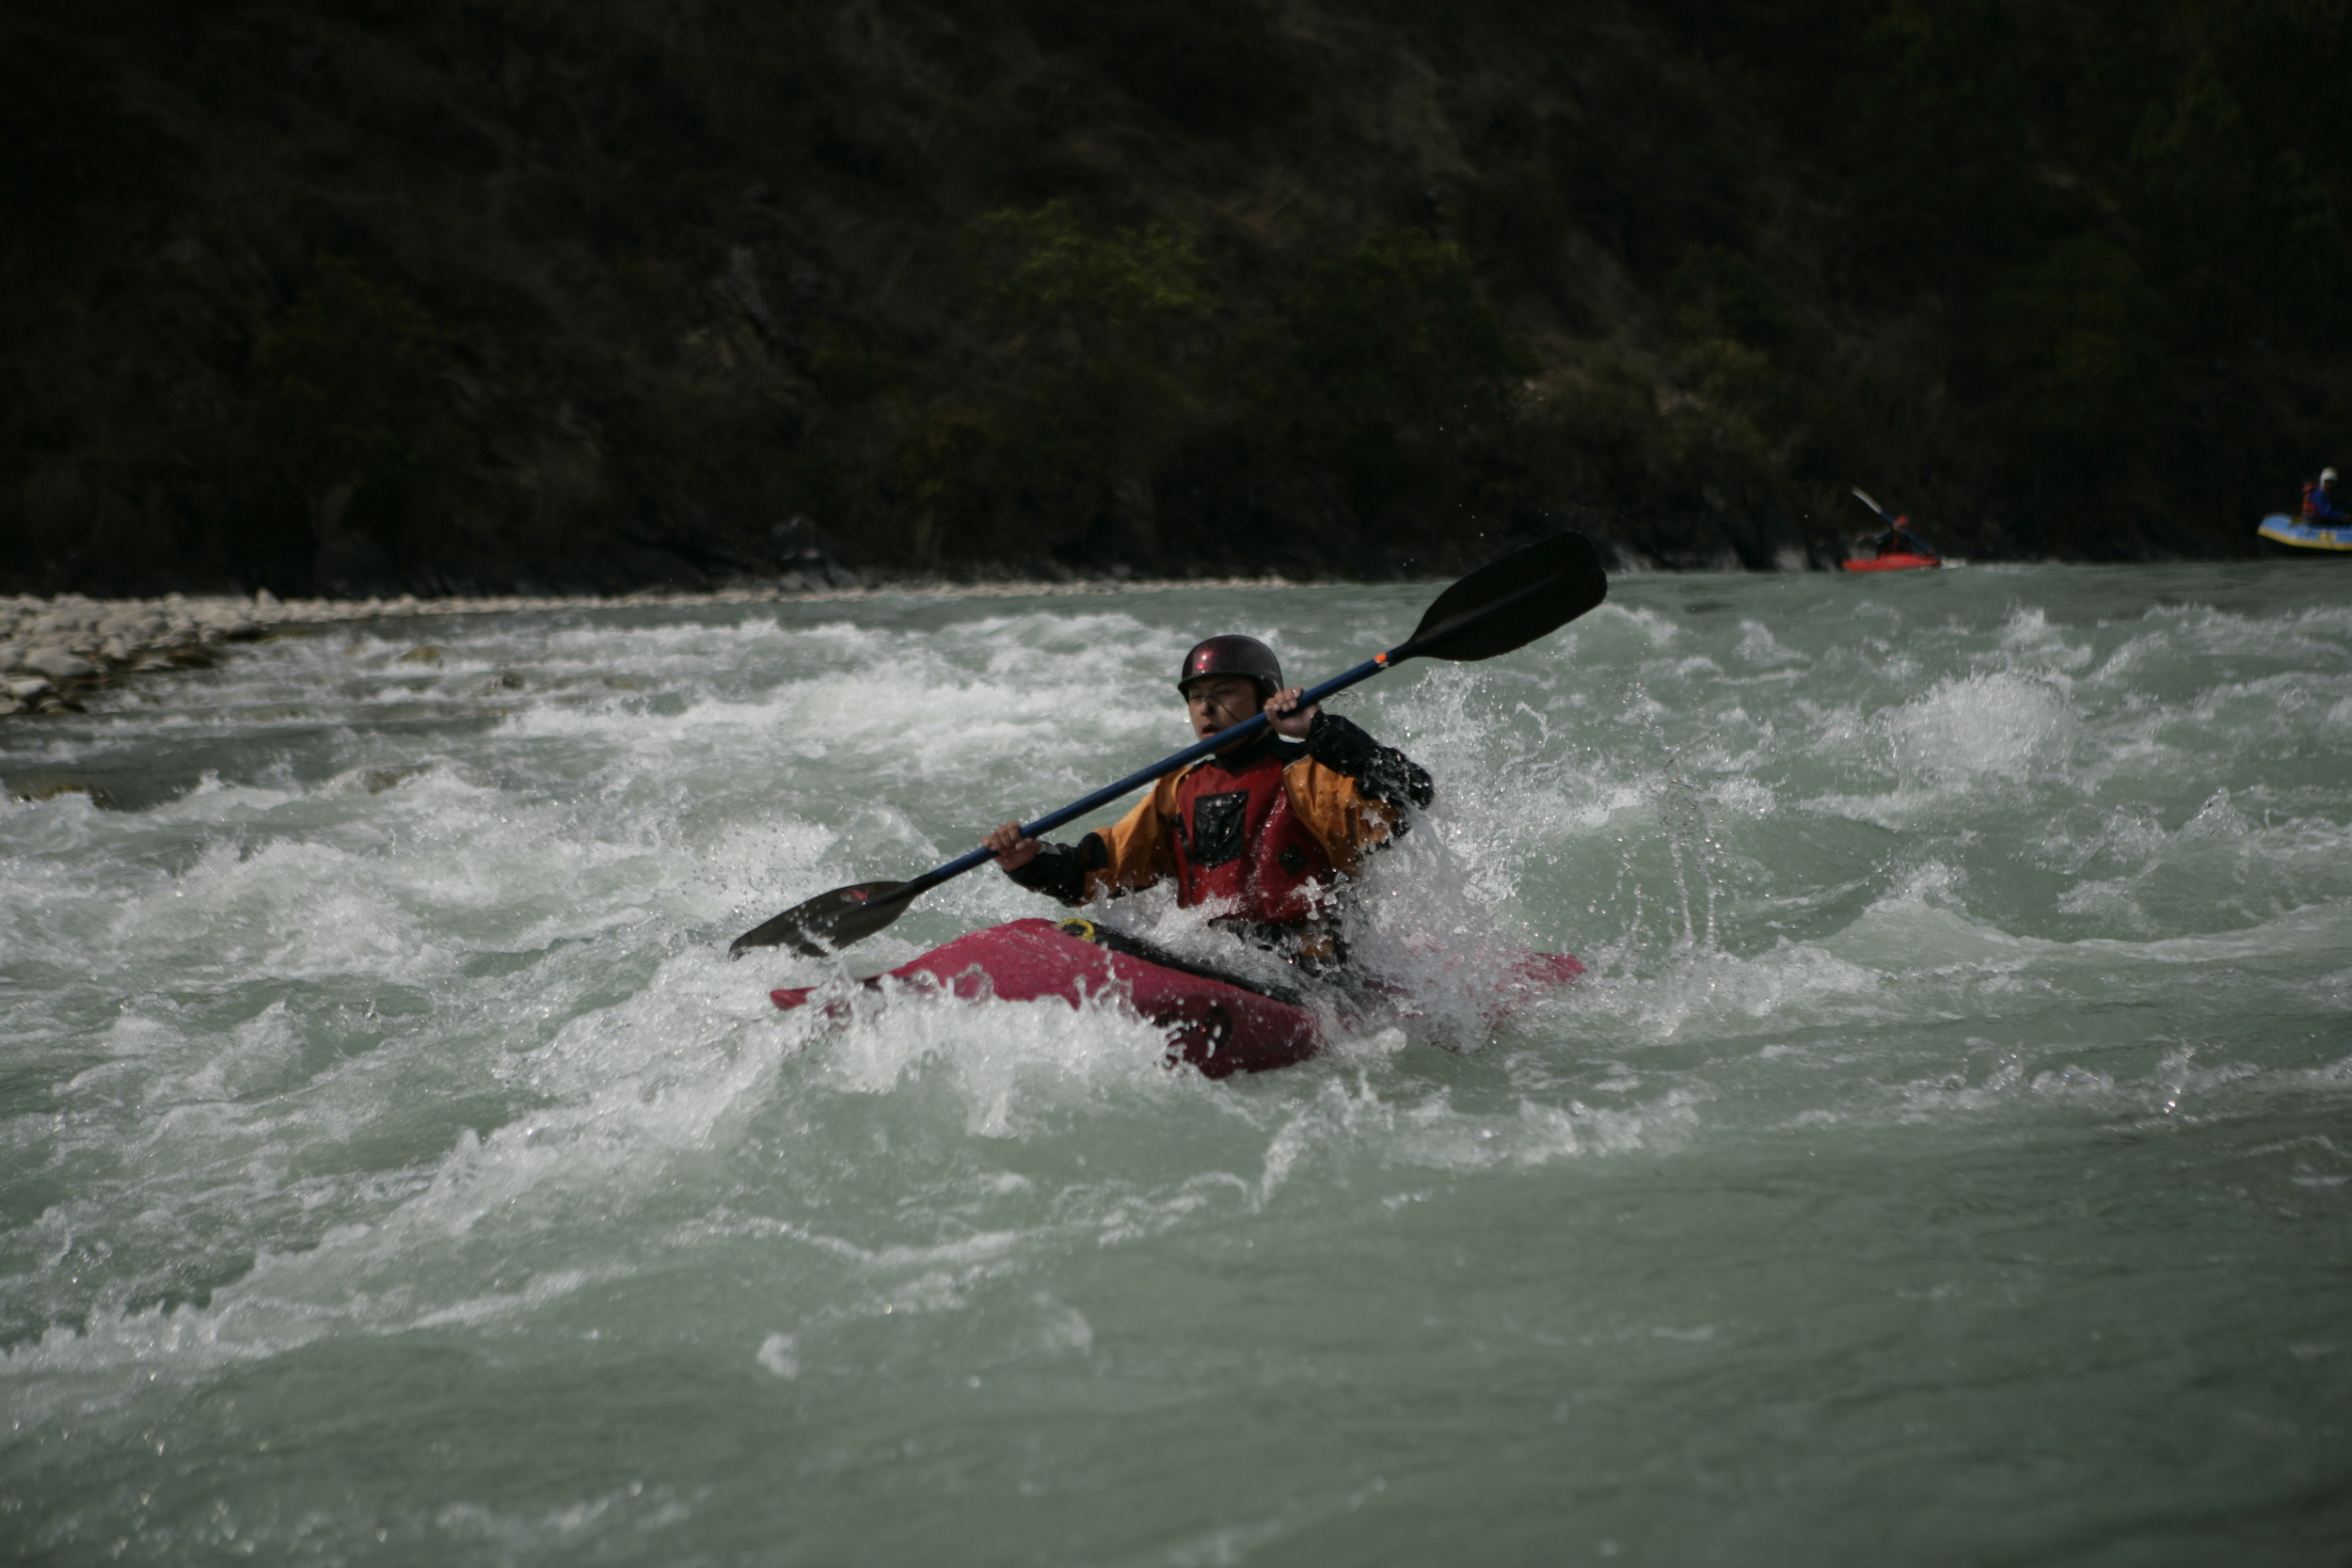 White water rafting - doesn't get better than this